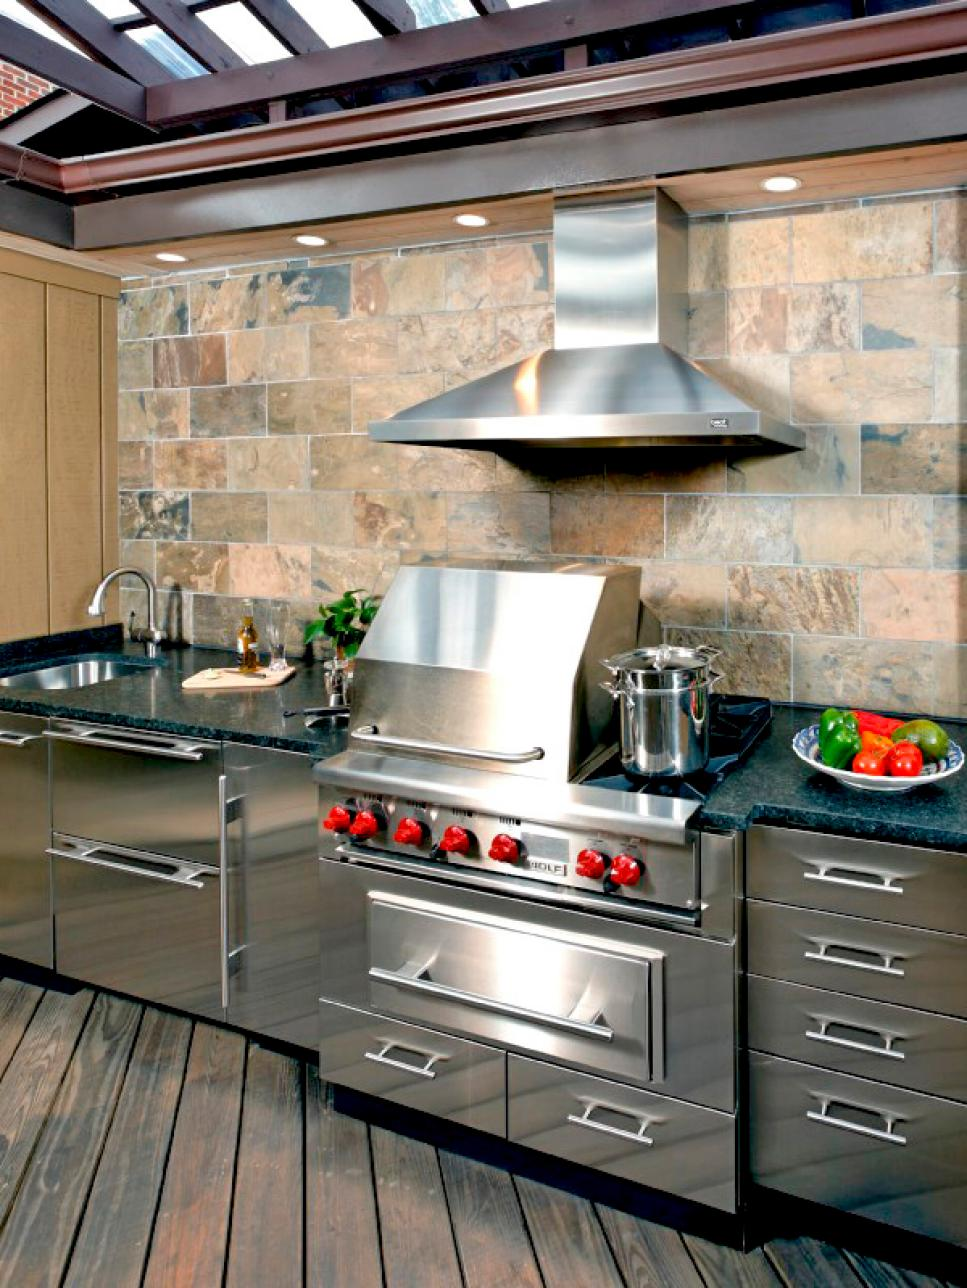 10 Outdoor Kitchens That Sizzle HGTV